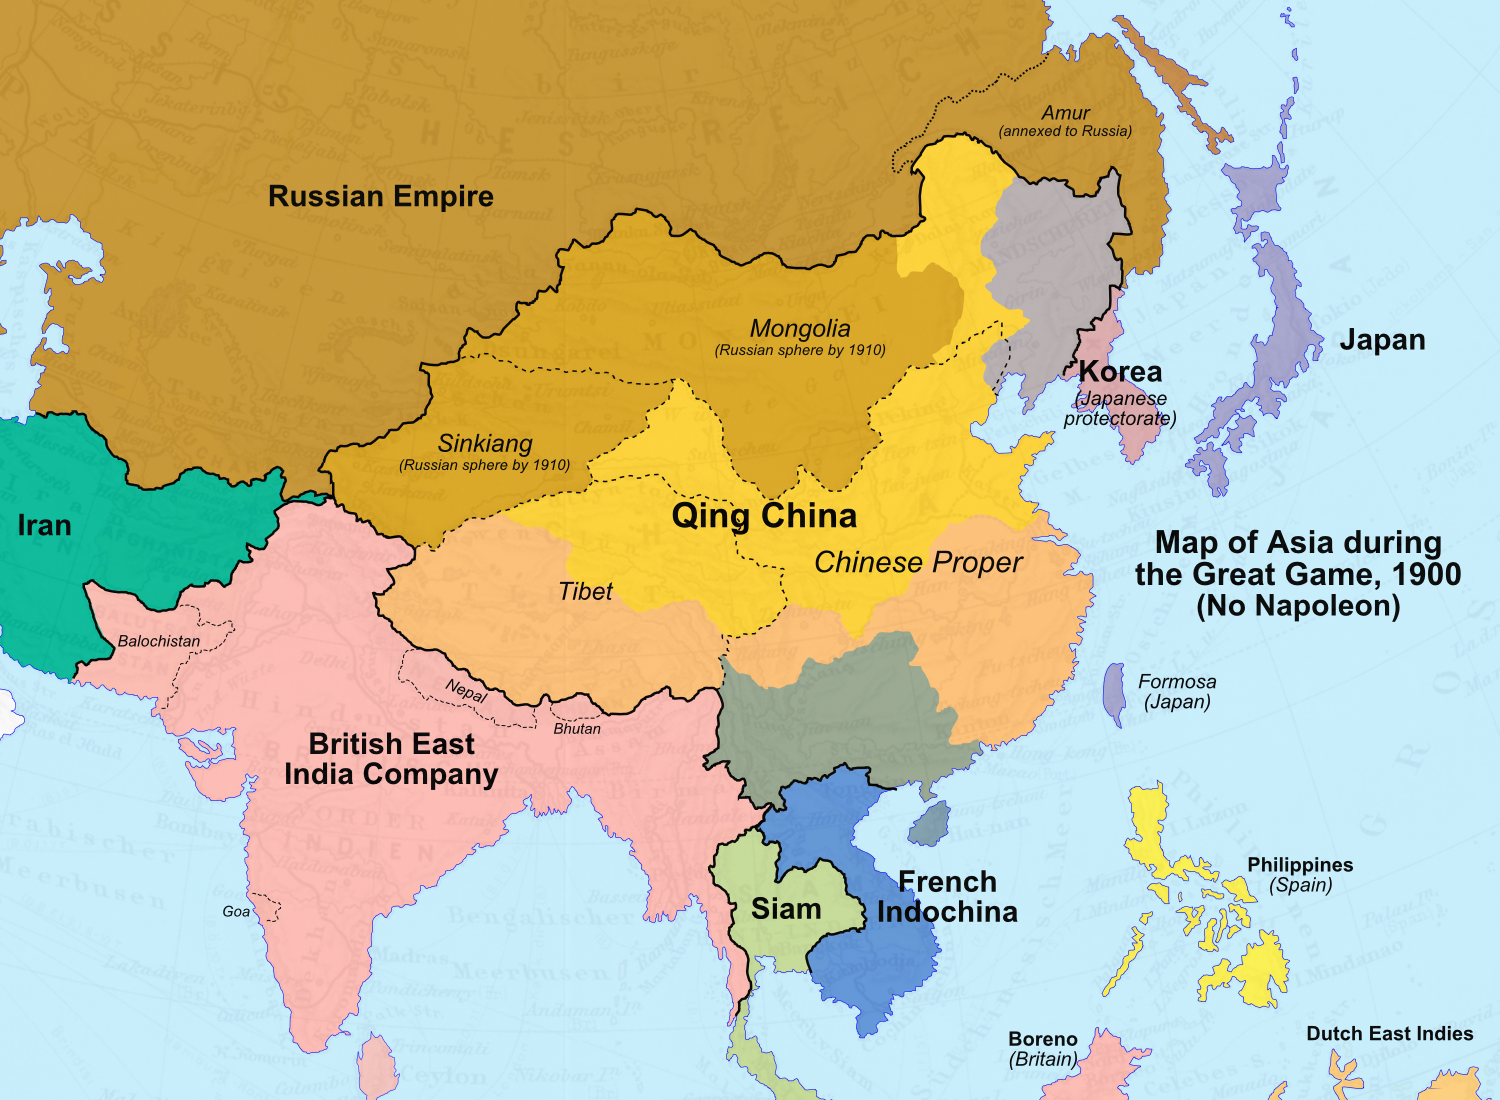 Image Map of Asia 1900 No Napoleonpng – Full Map of Asia